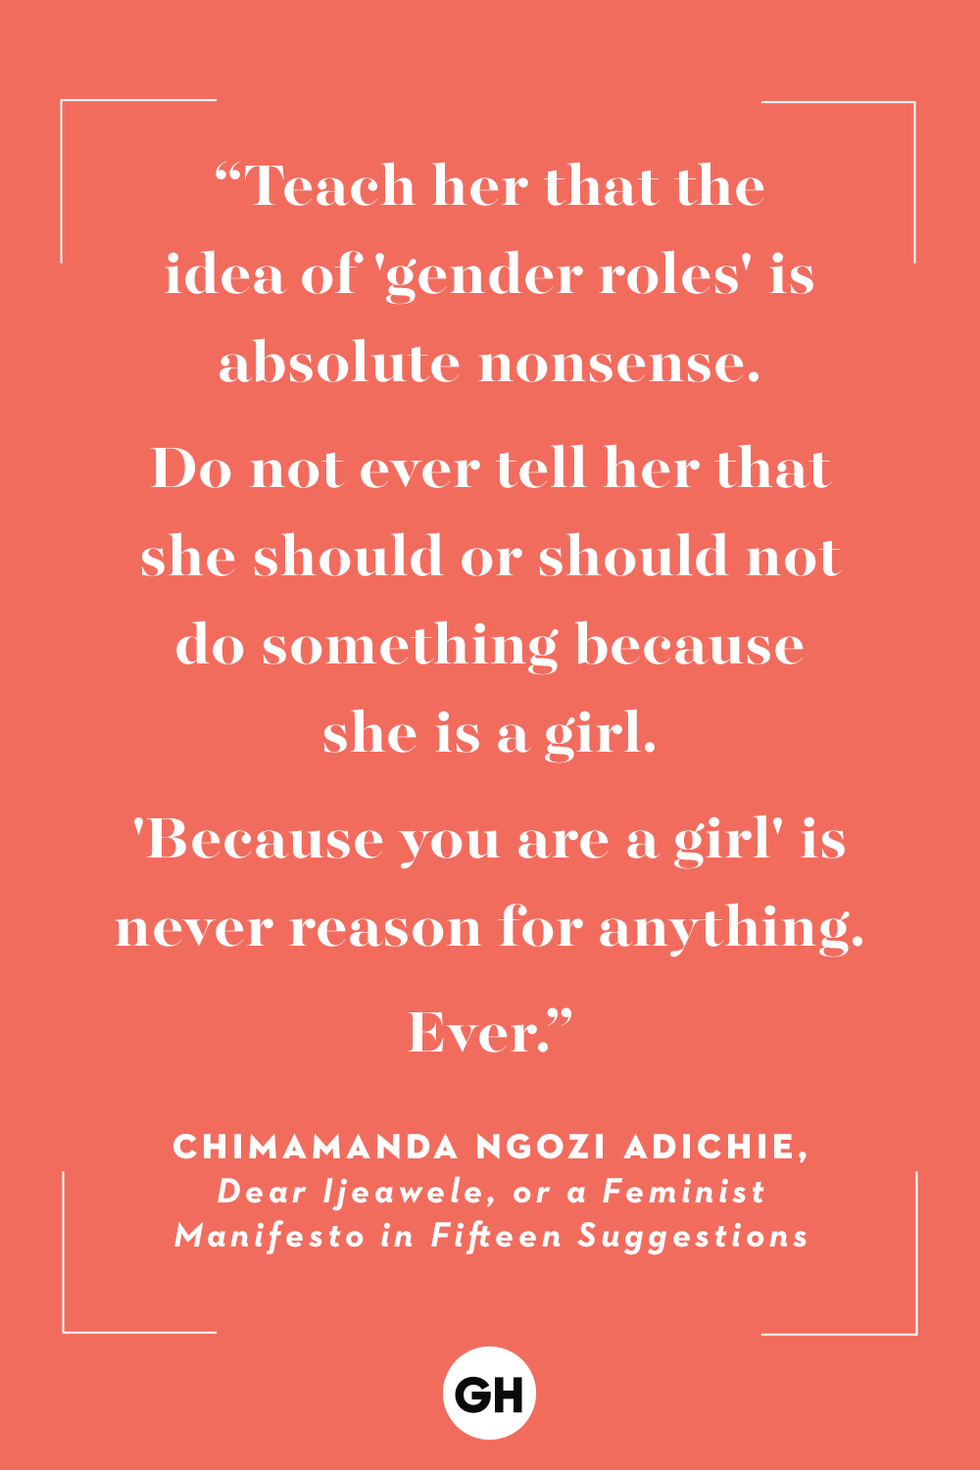 21 Most Empowering Feminist Quotes of All Time